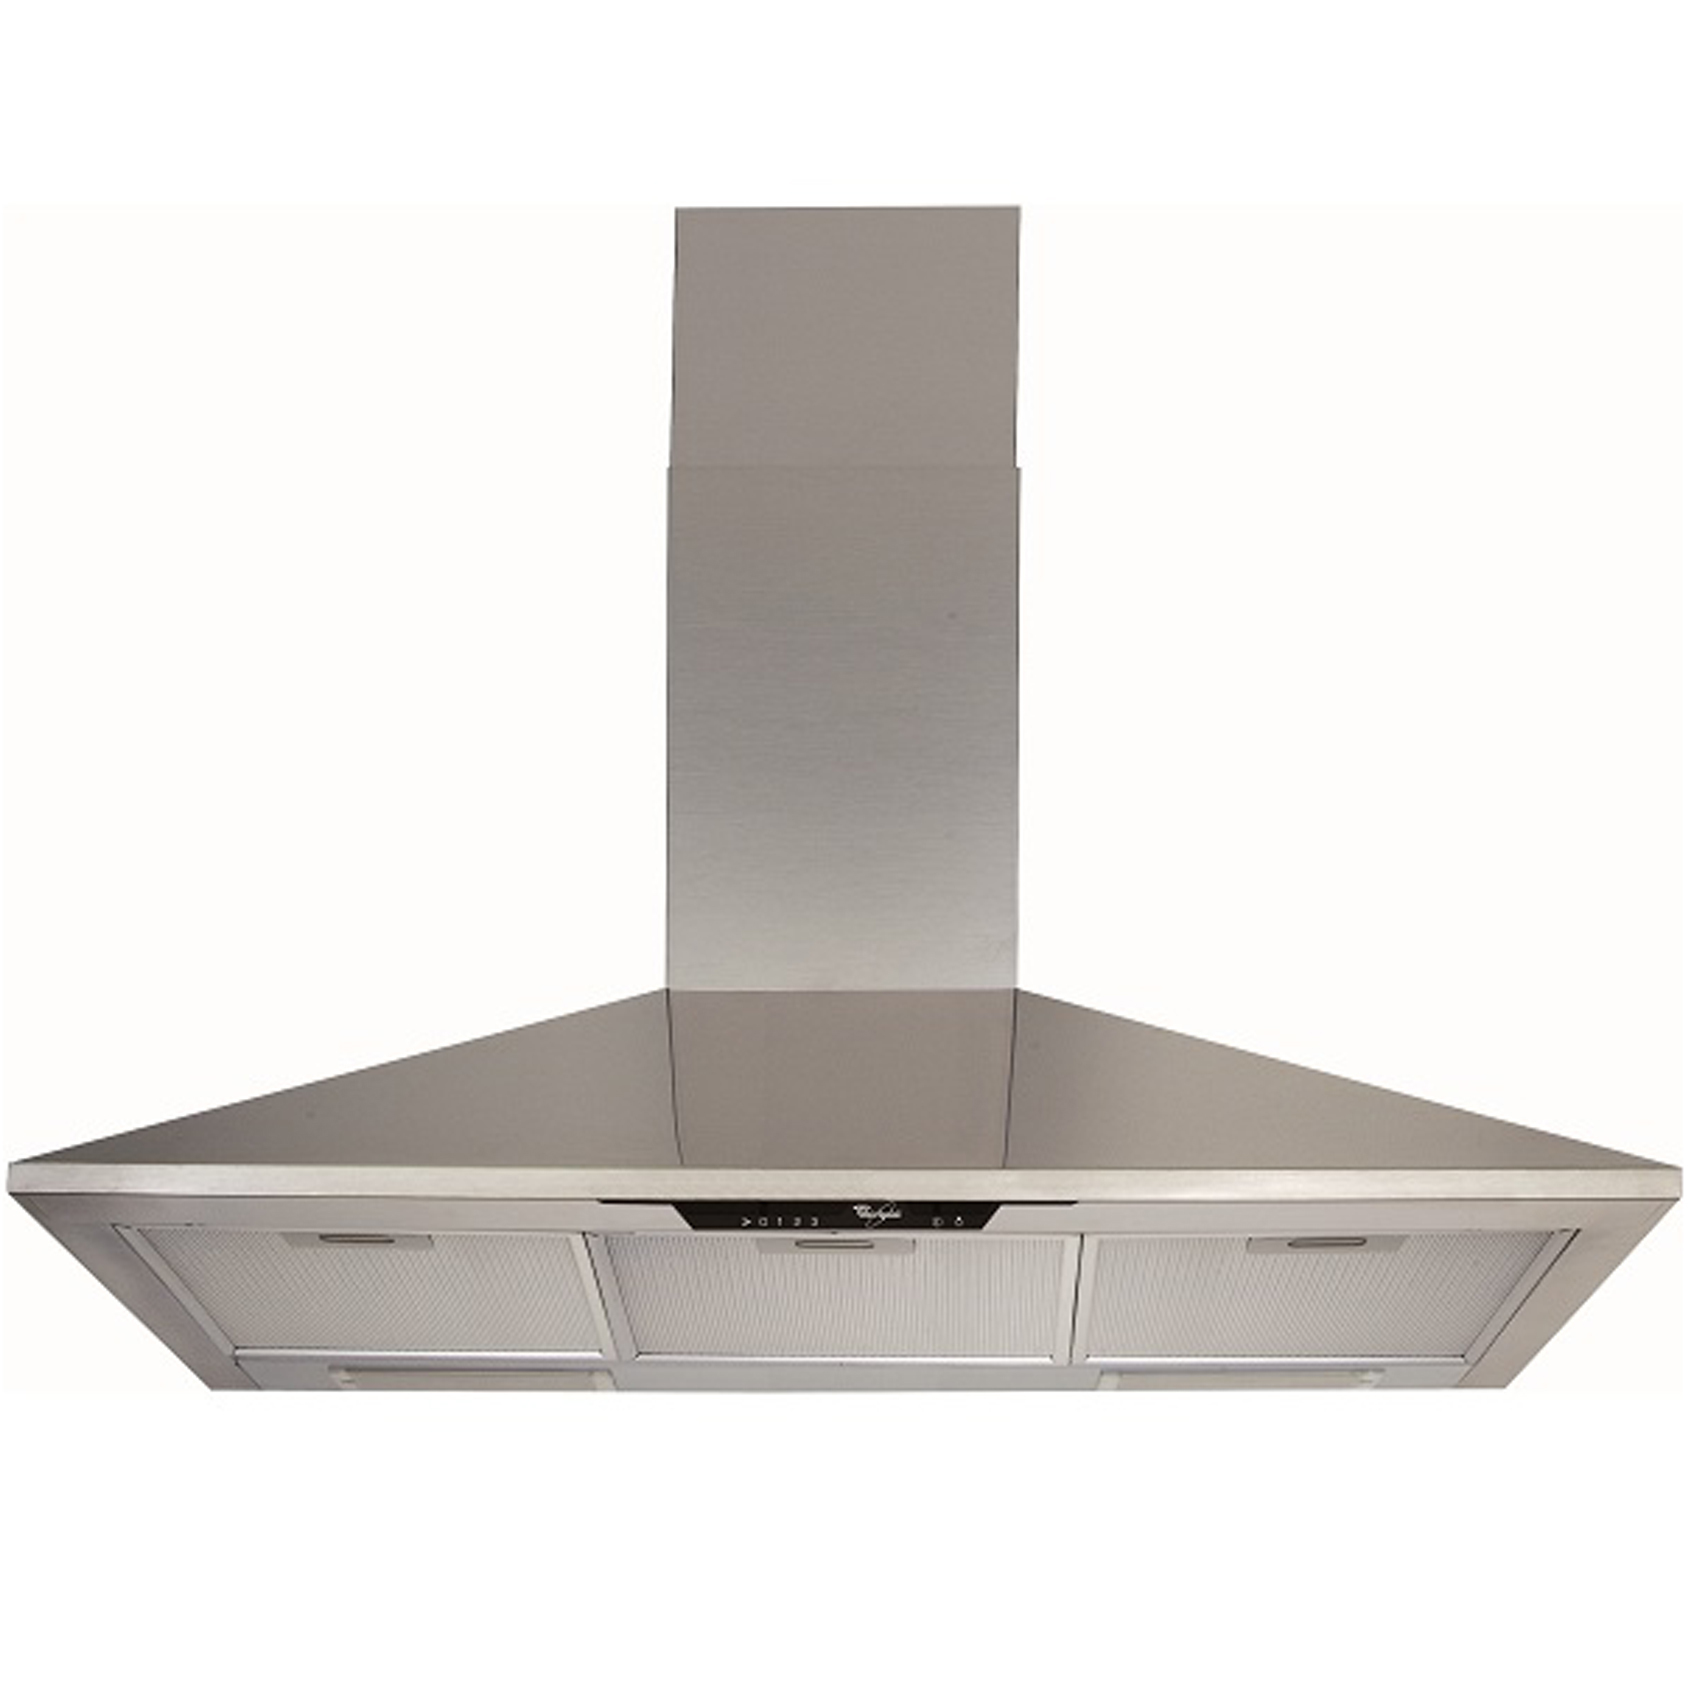 WHIRLPOOL BUILT-IN HOOD AKR945IX